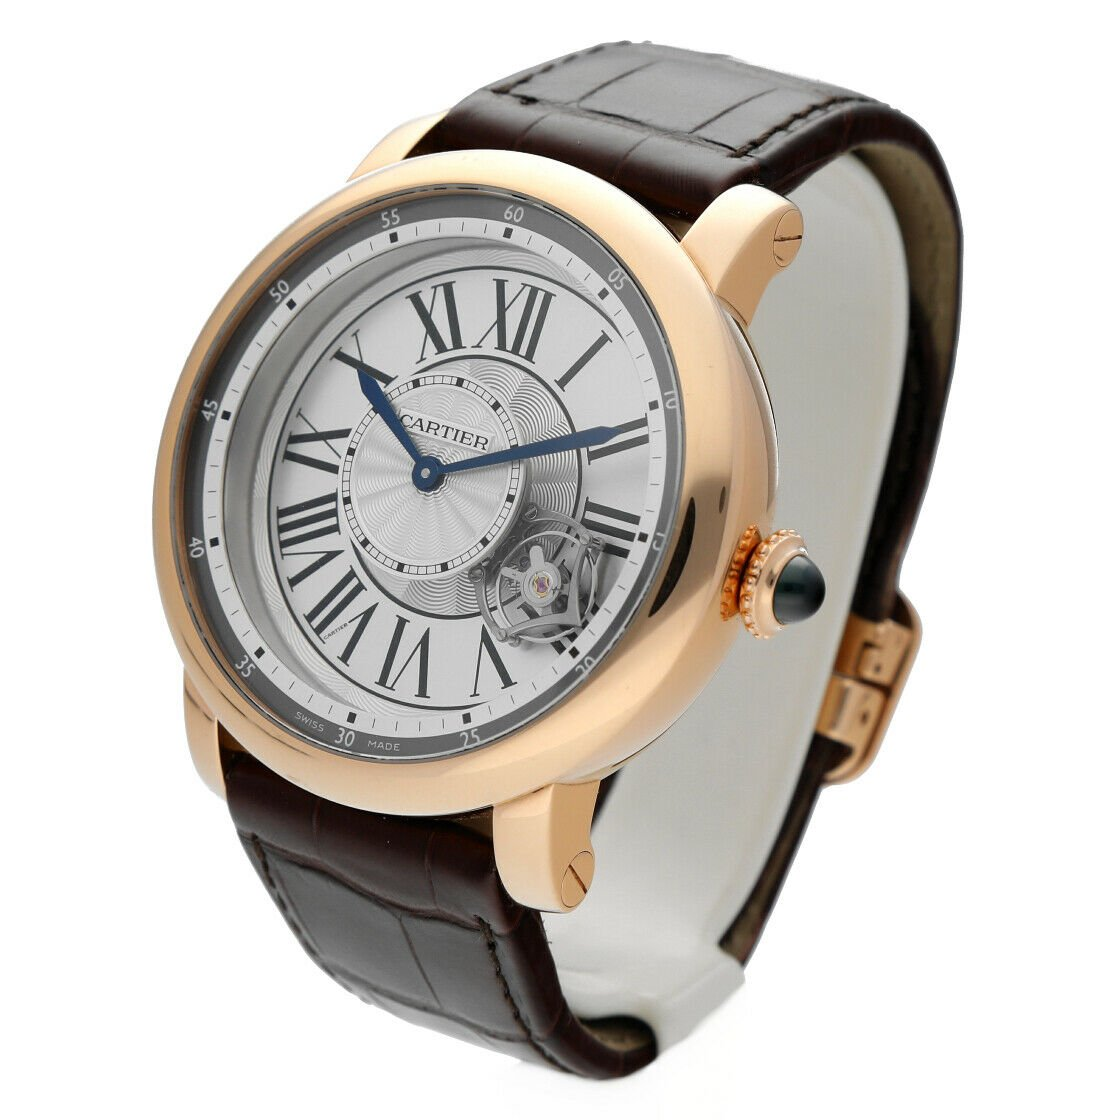 Cartier 3308 W1556205 Rotonde Astrotourbillon 18k Rose Gold Limited Mens Watch 124243384081 2